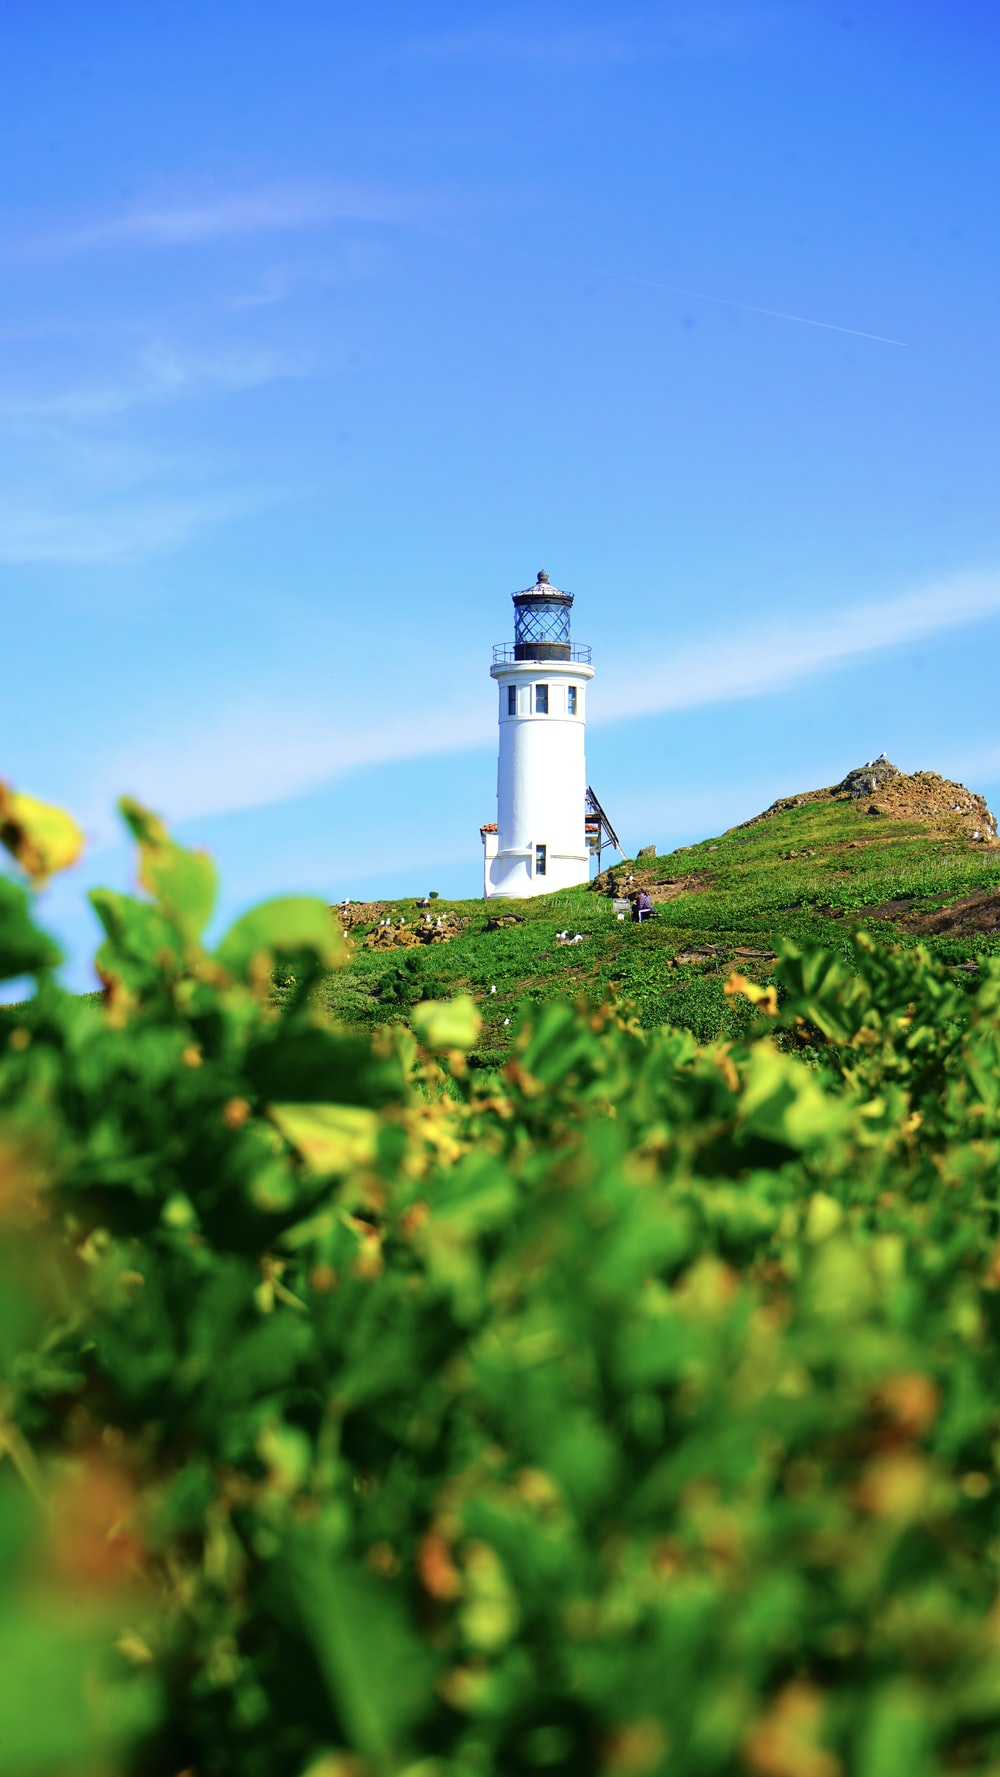 white lighthouse on green grass field under blue sky during daytime